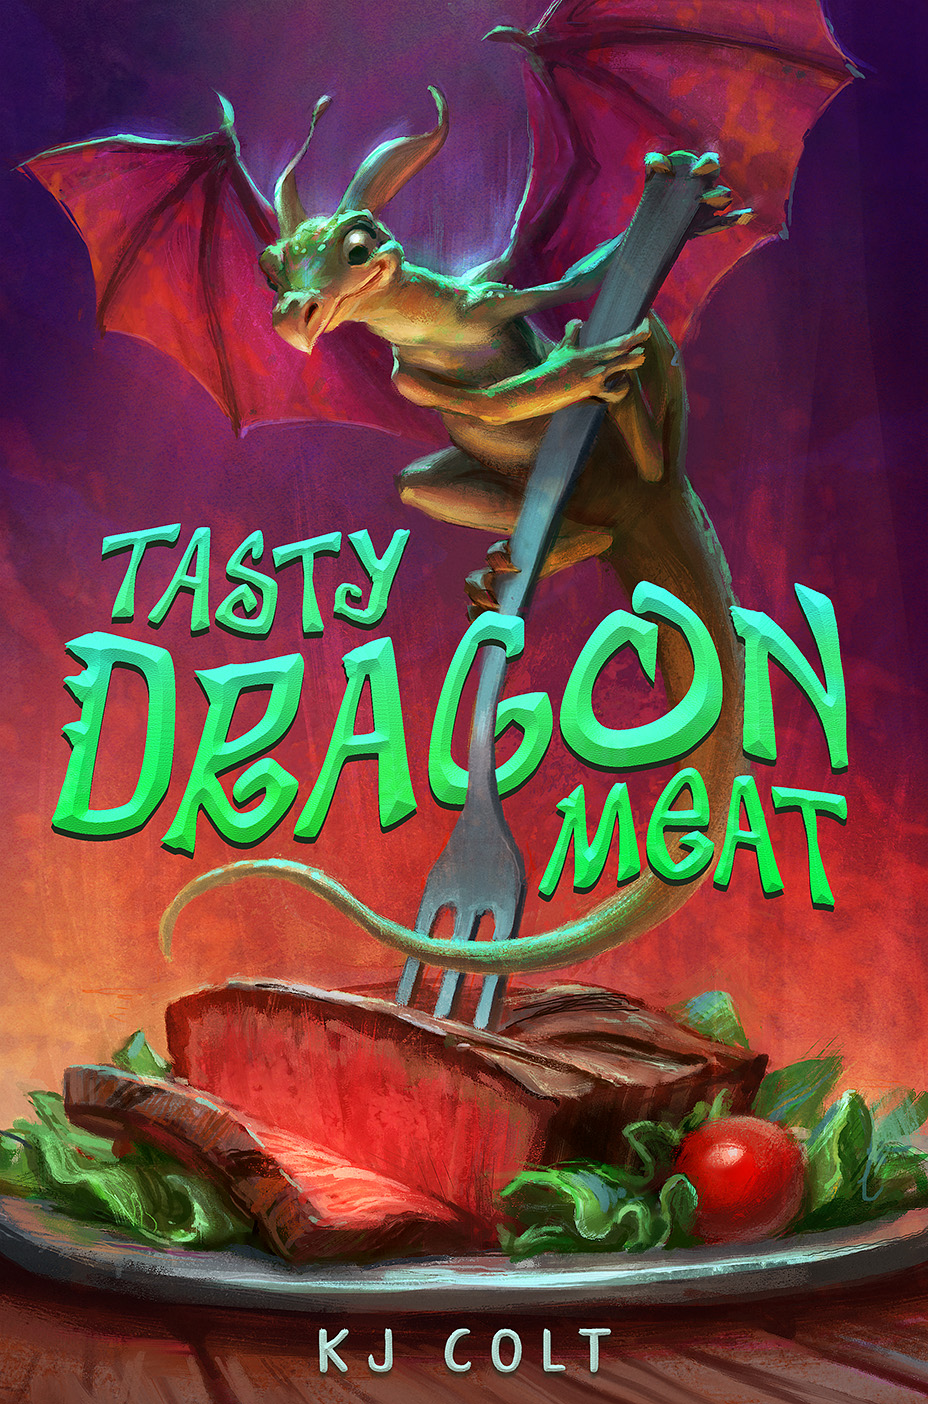 Tasty Dragon Meat by Lane Brown